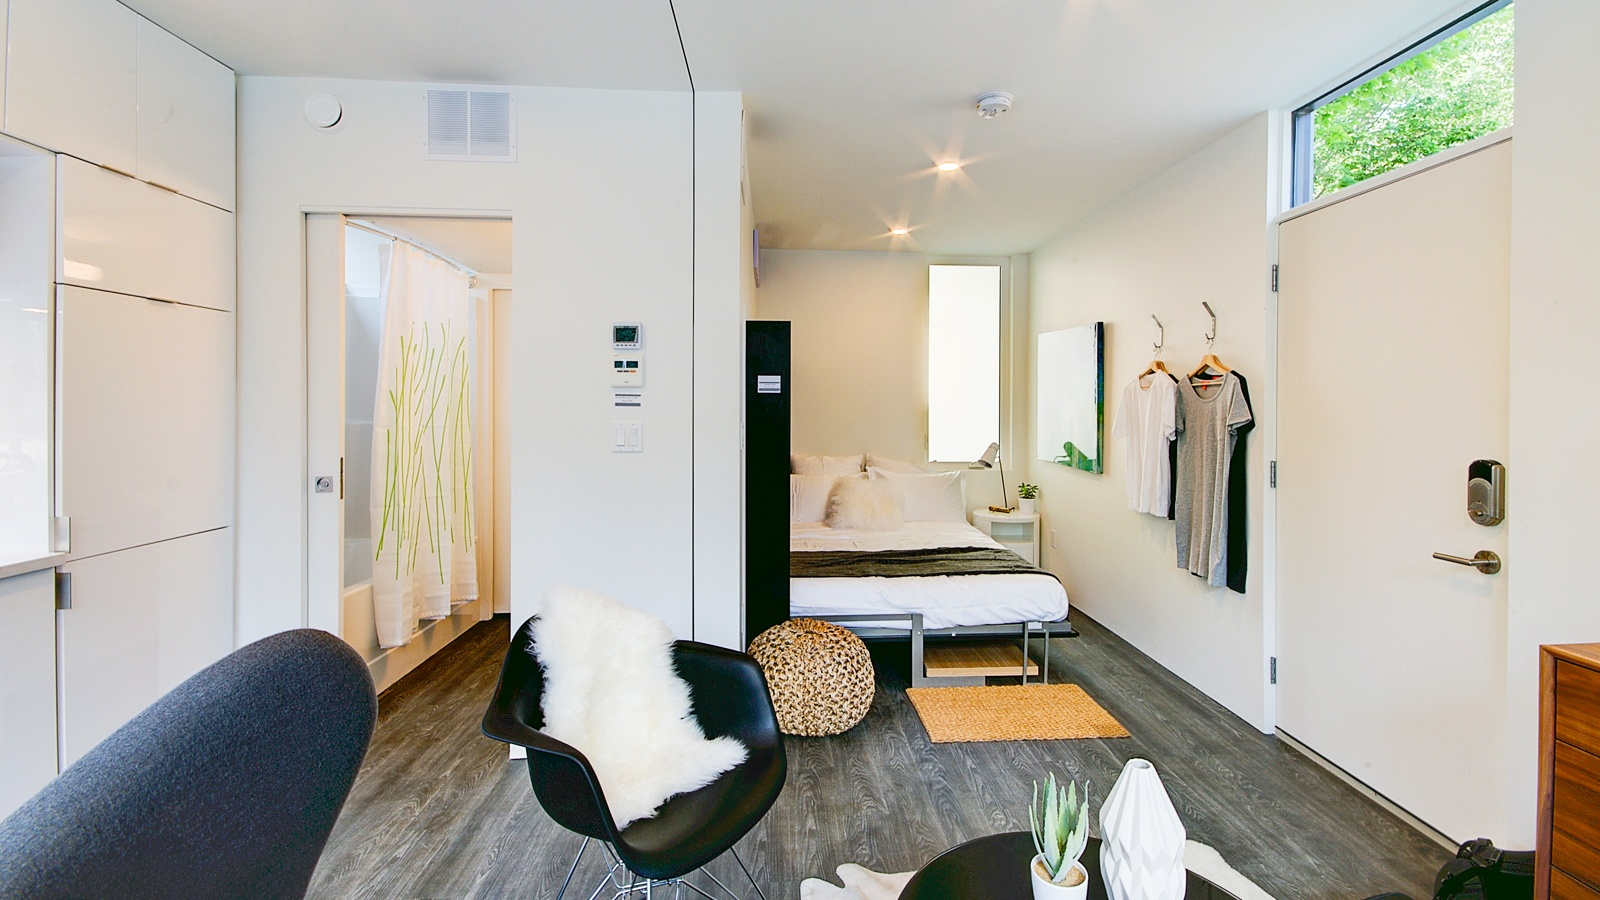 Maui shipping container houses my big flip flop hawaii real estate market trends hawaii life - Container homes hawaii ...